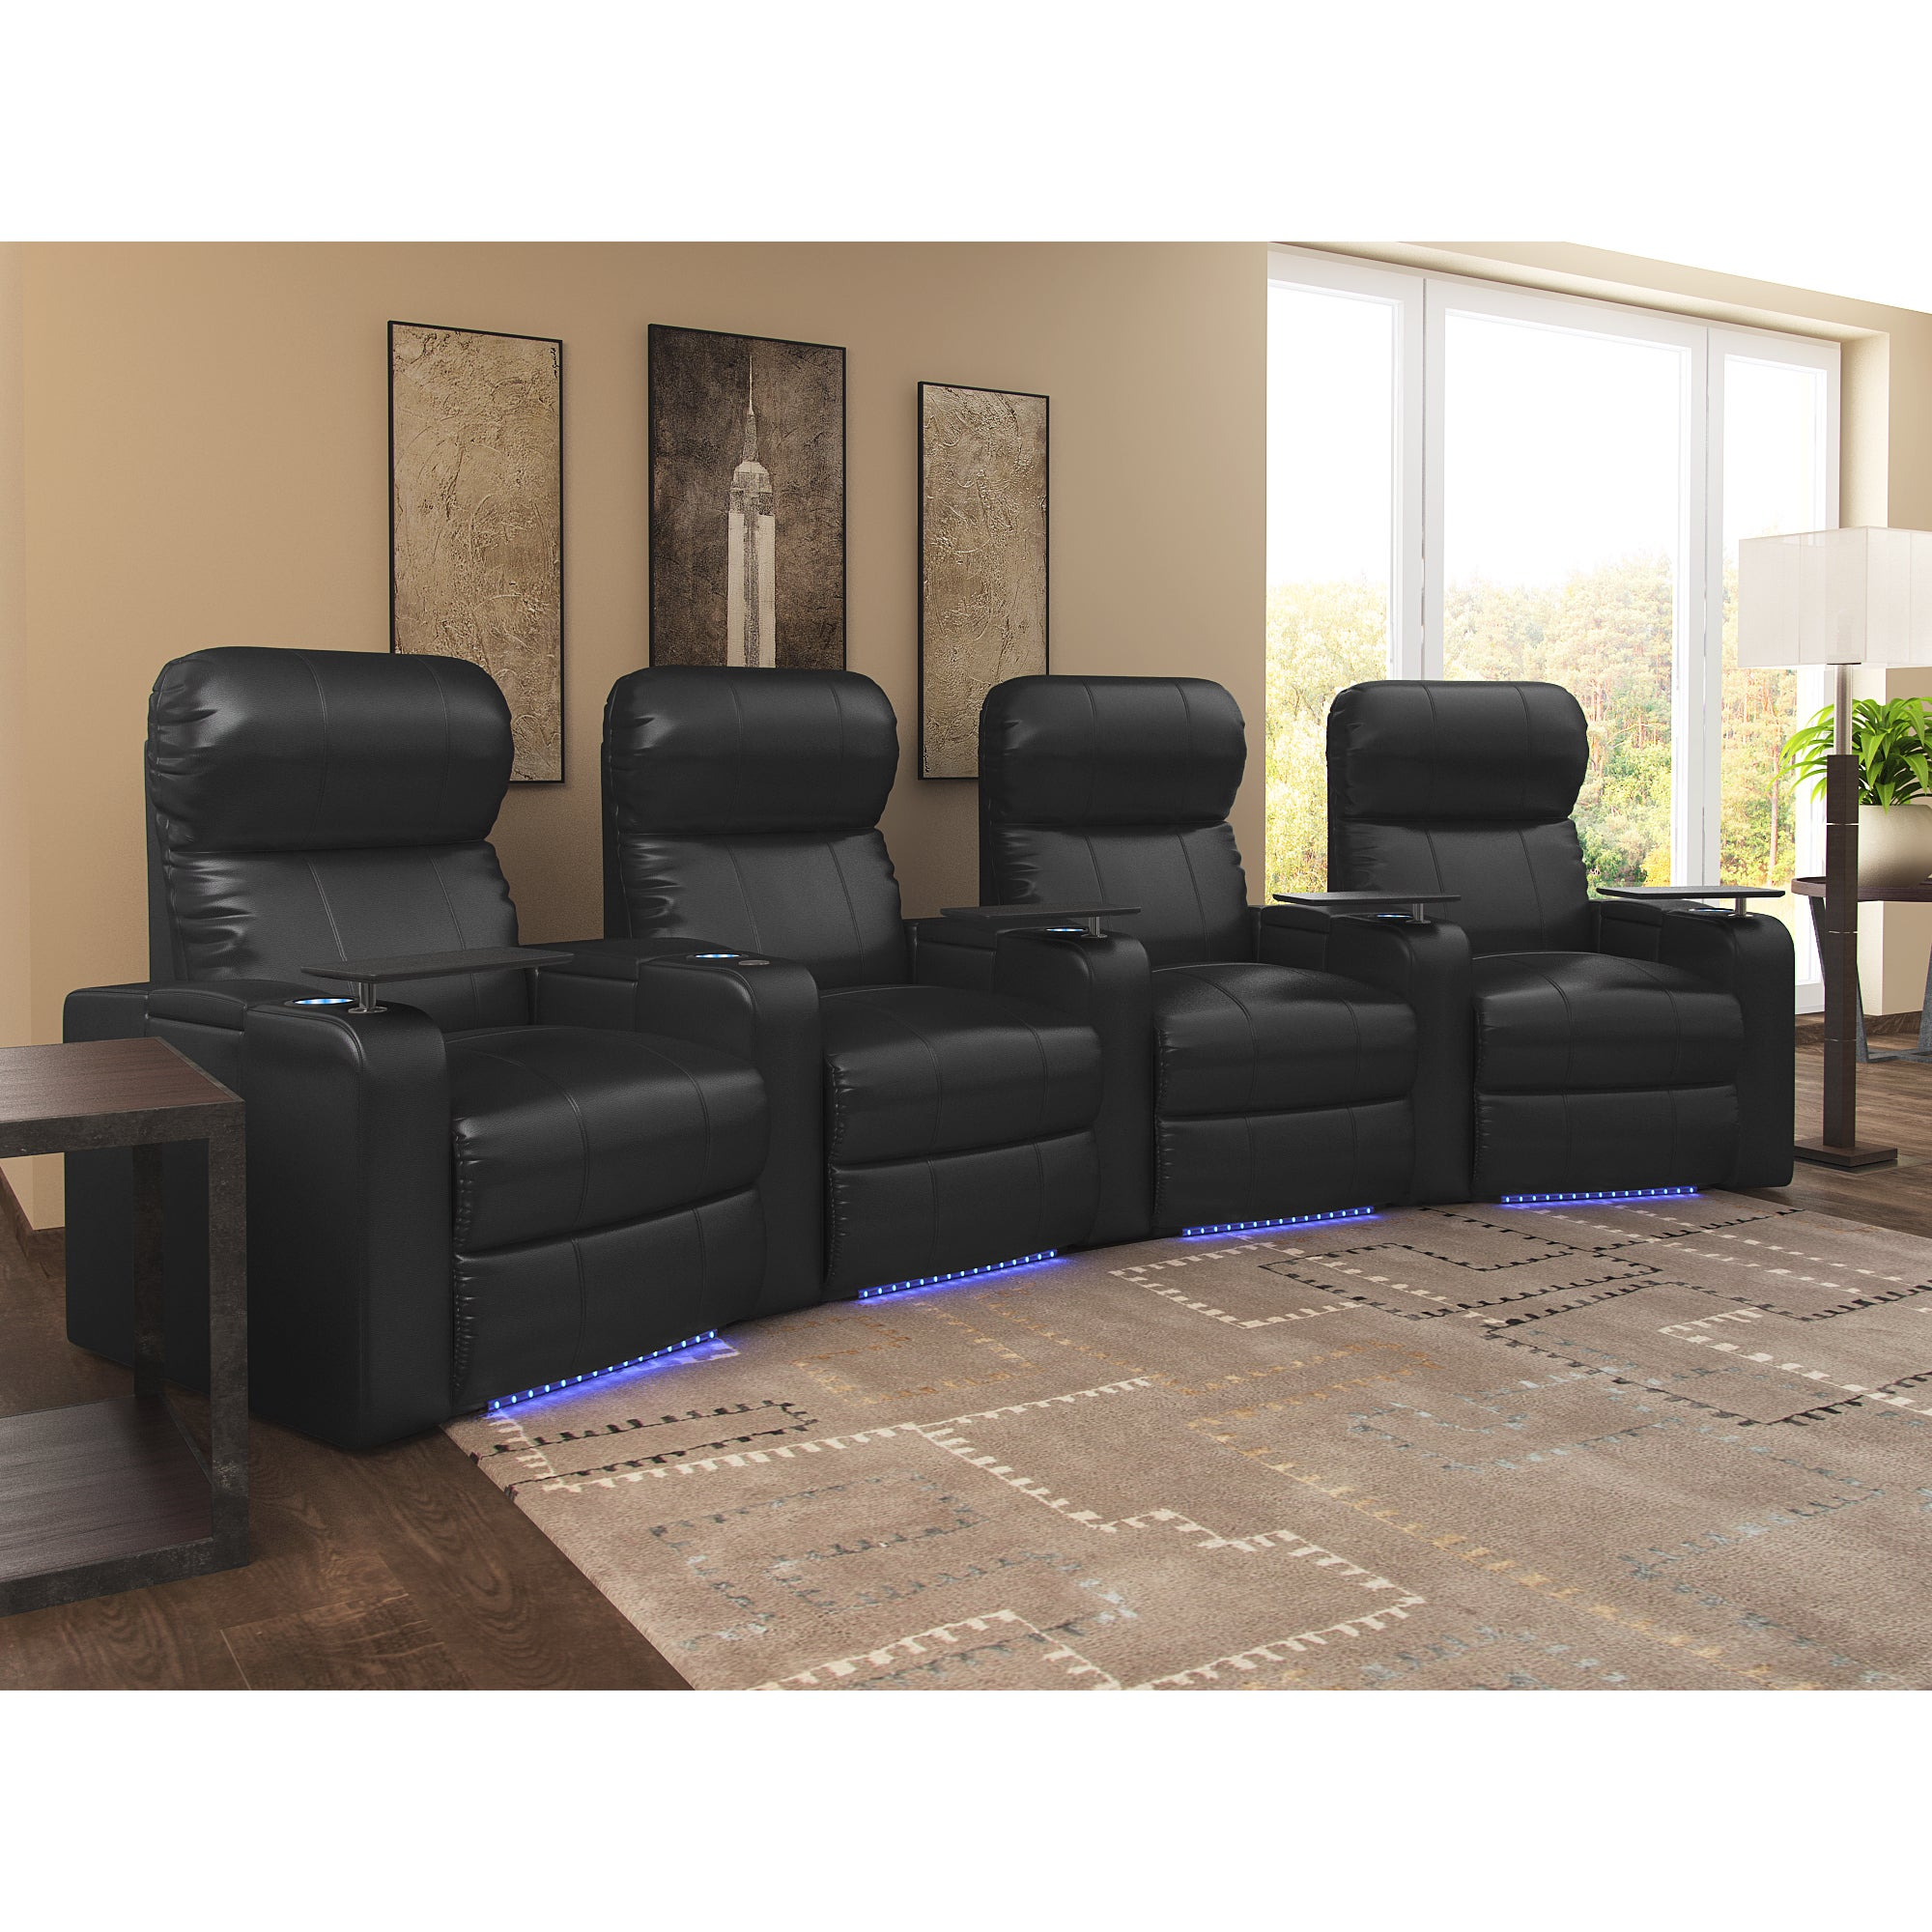 Octane Turbo Xl700 Curved Manual Recline Black Bonded Leather Home Theater Seating Row Of 4 Free Shipping Today 10655567